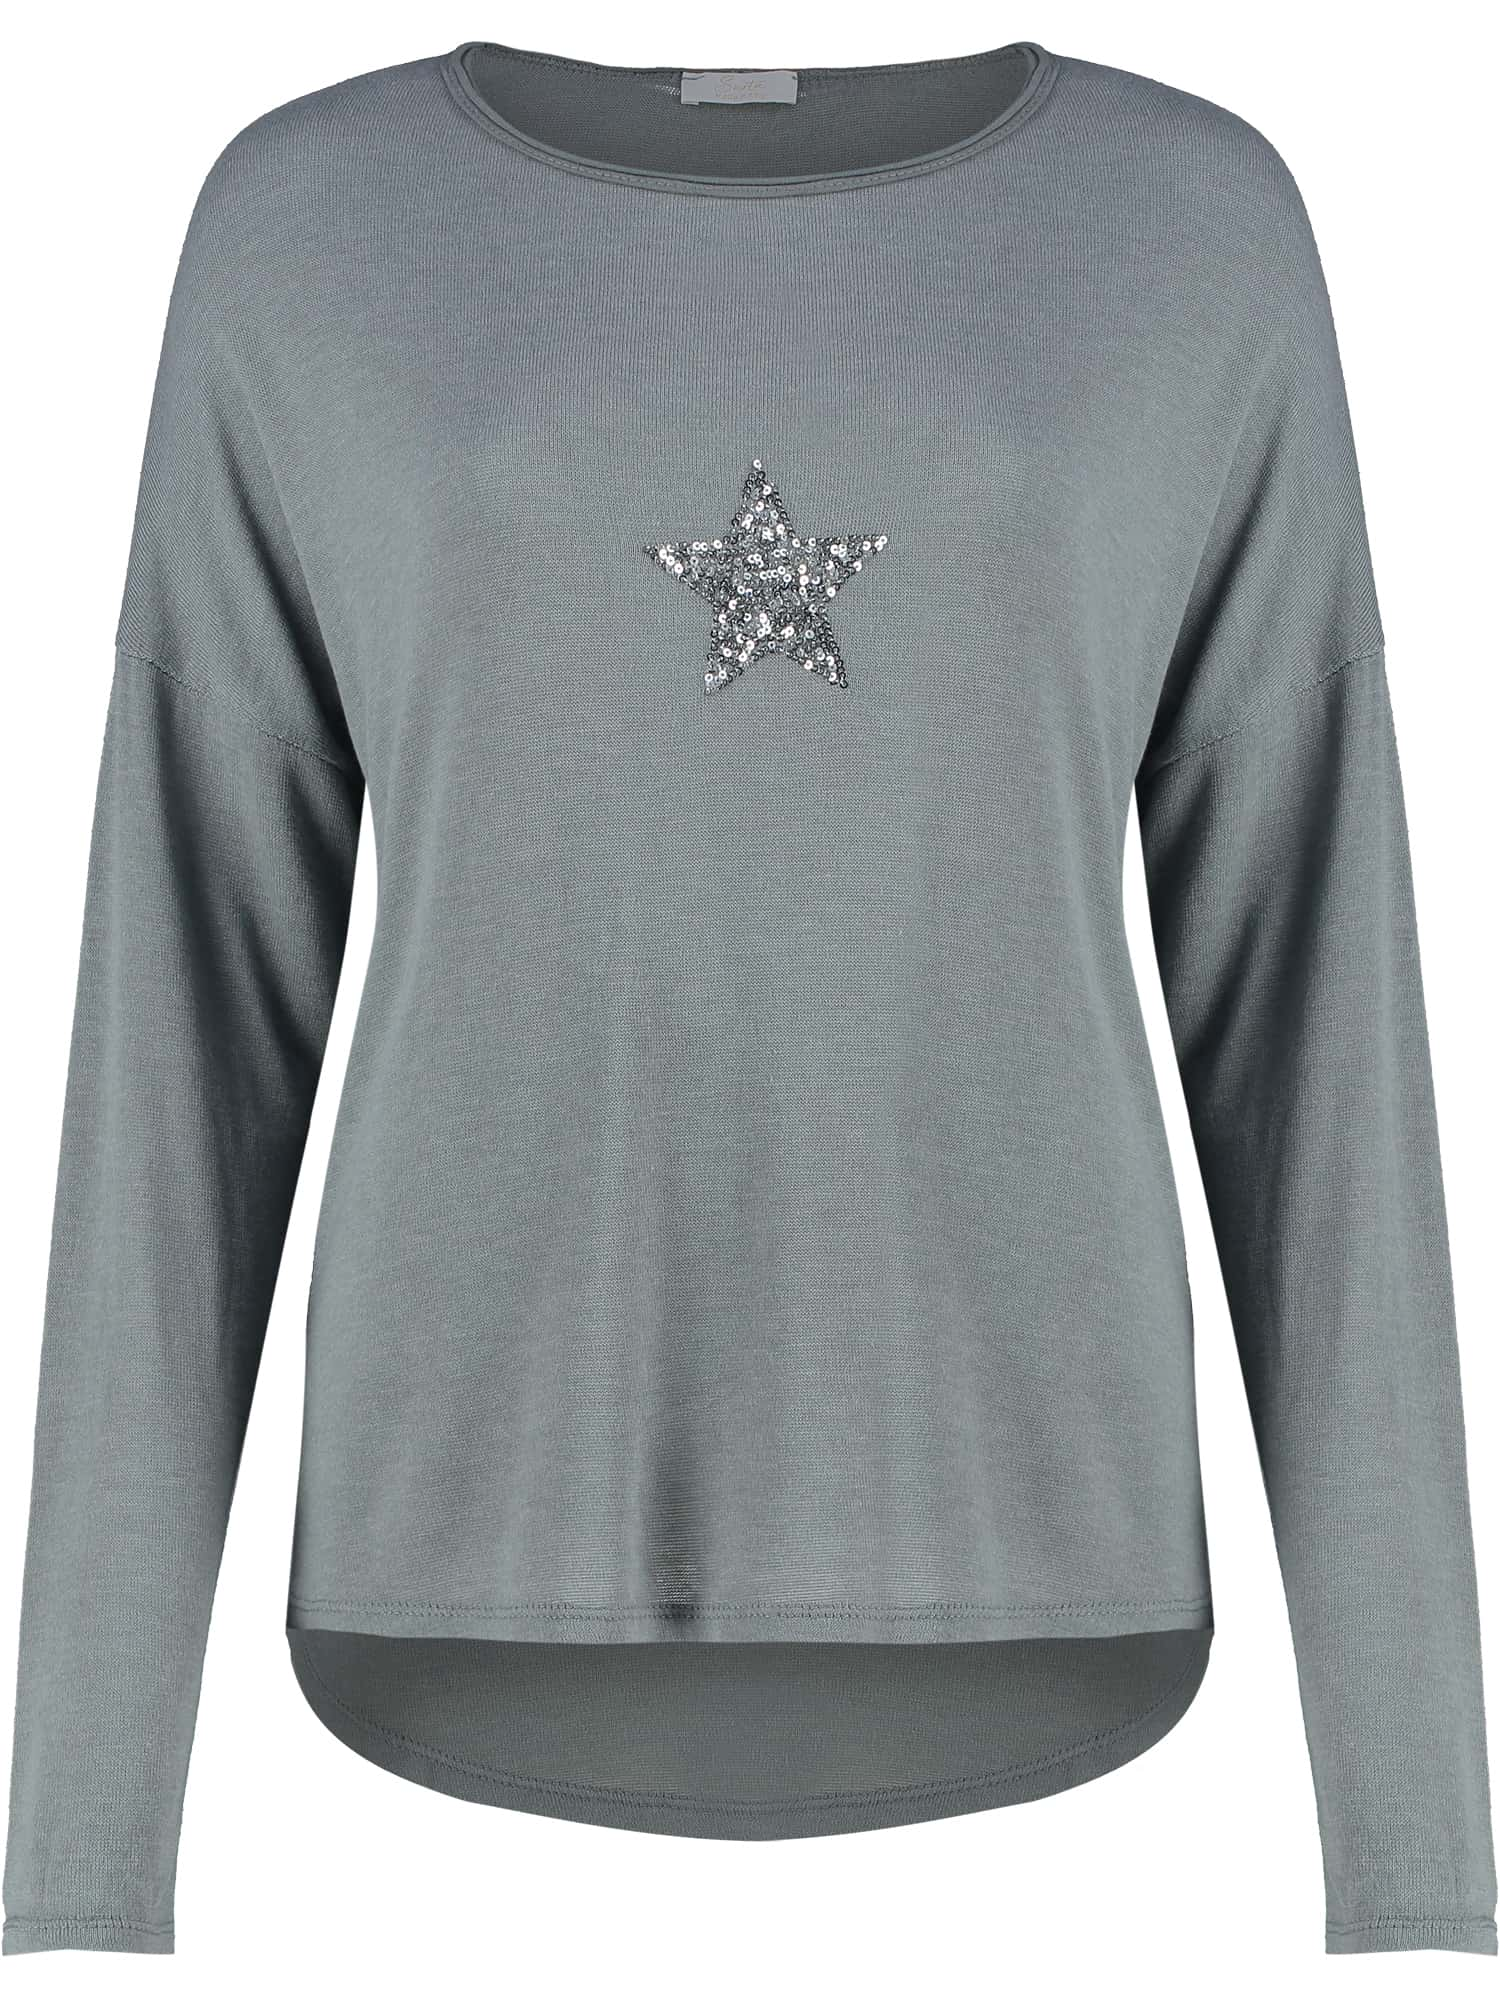 Grey-Long-Sleeve-T-with-Star-1 re